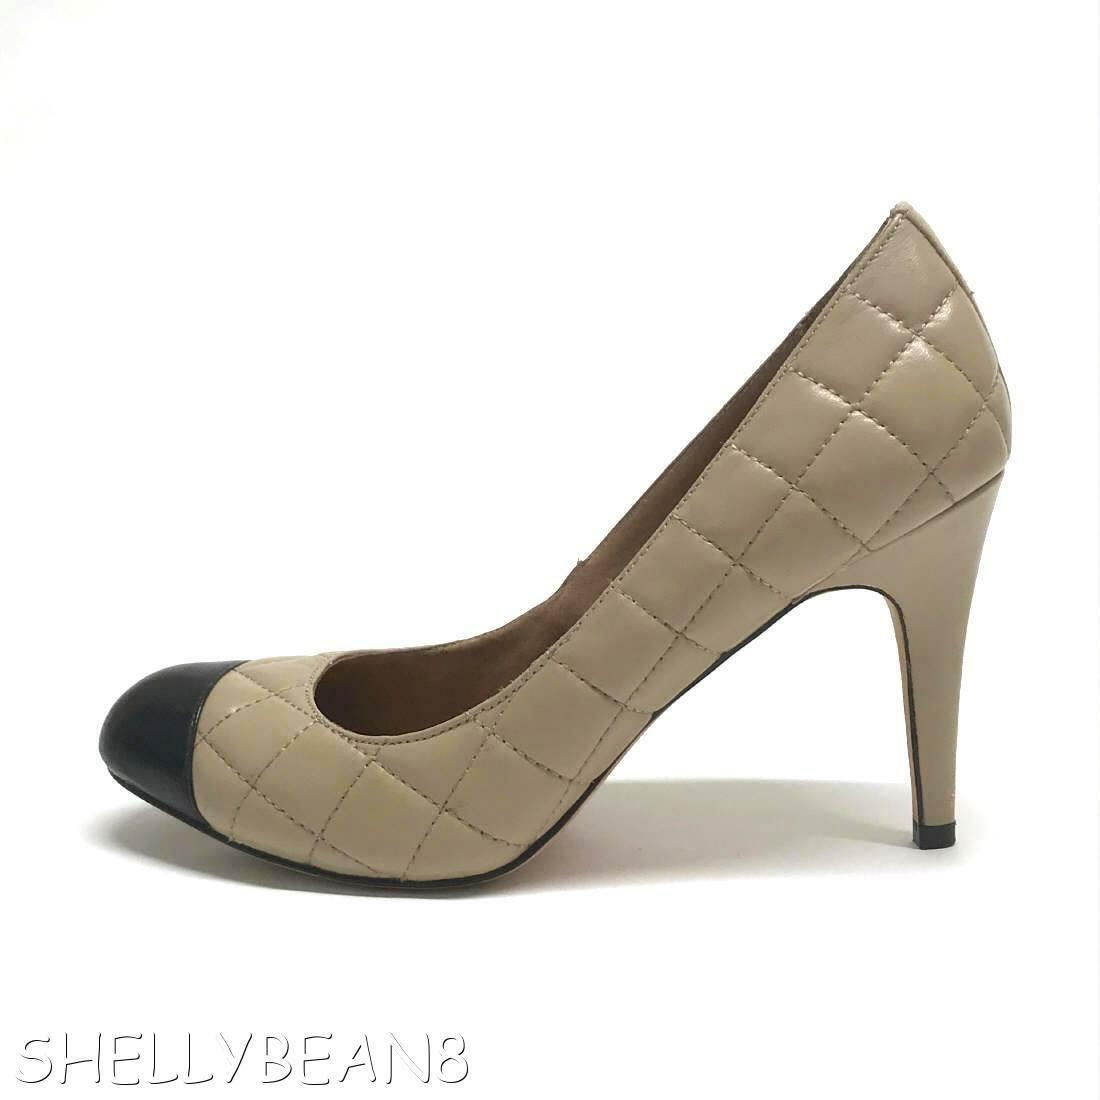 CORSO COMO Quilted Leather Leather Quilted Nude Black CAP TOE Pumps Heels Shoes 9.5 CLASSIC CHiC df0a18